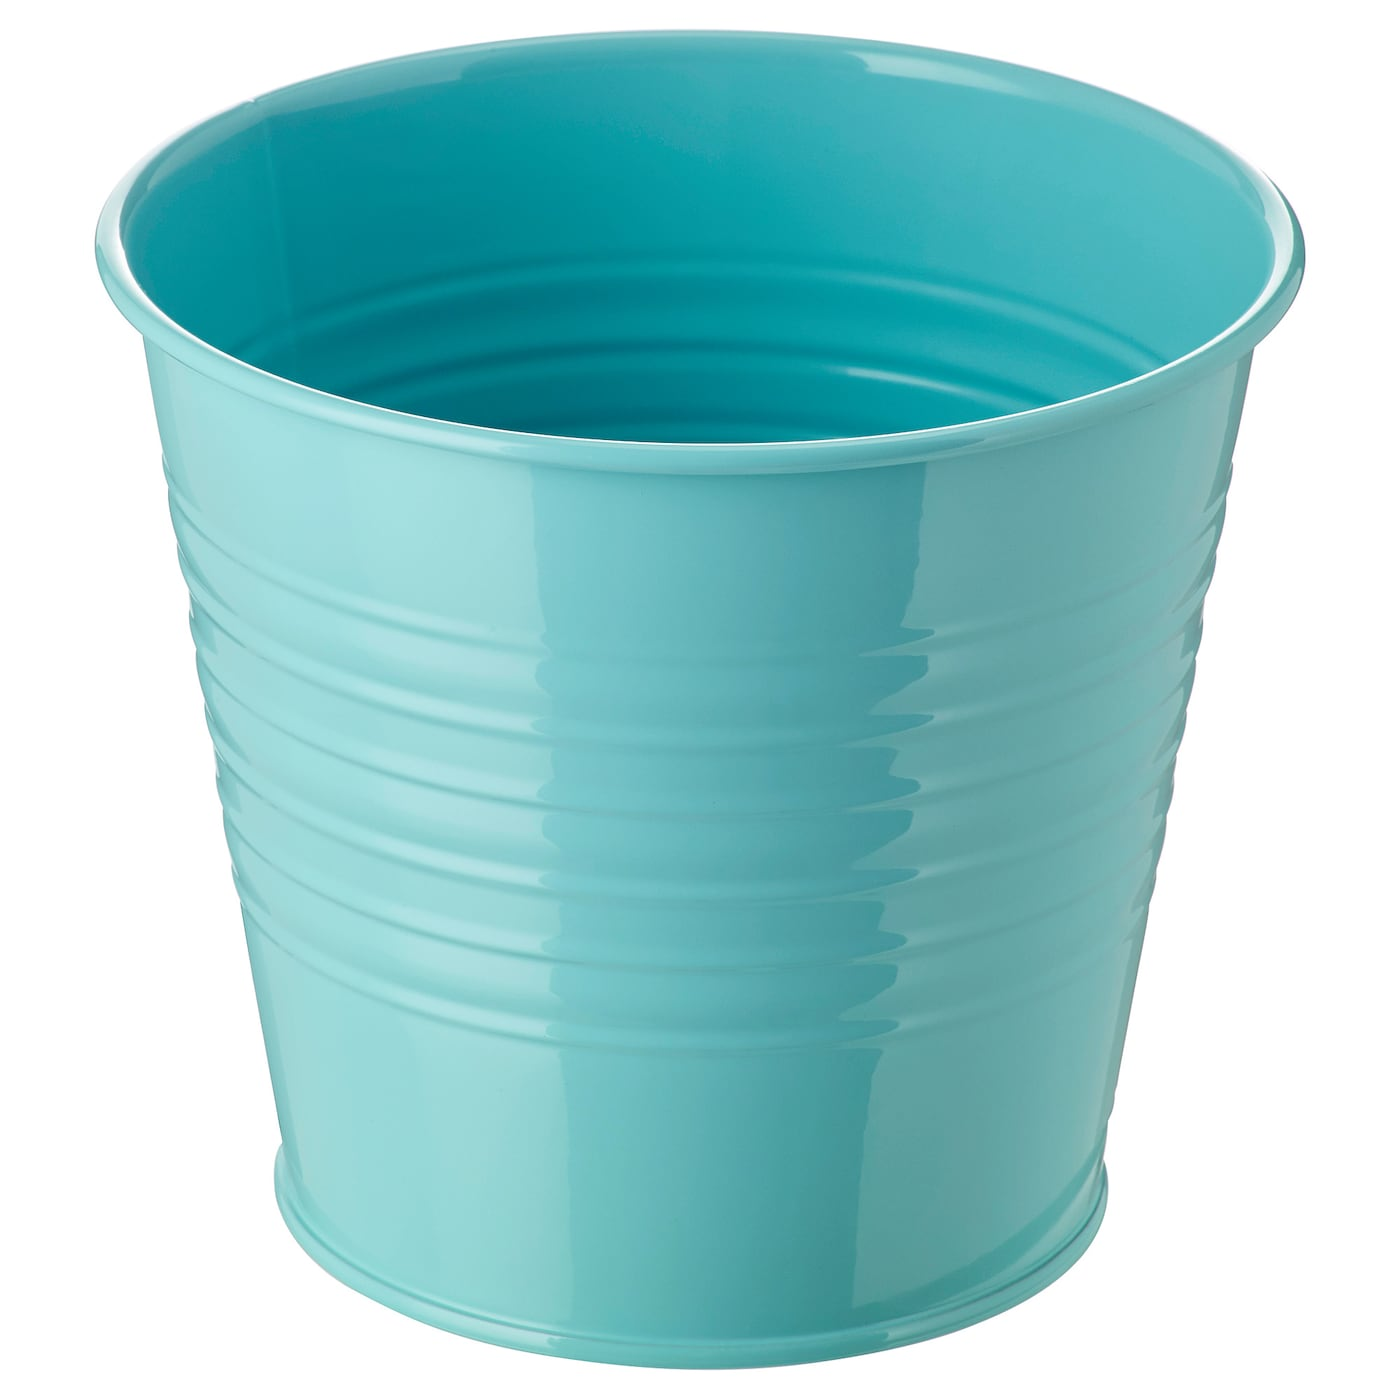 socker cache pot int rieur ext rieur turquoise 12 cm ikea. Black Bedroom Furniture Sets. Home Design Ideas